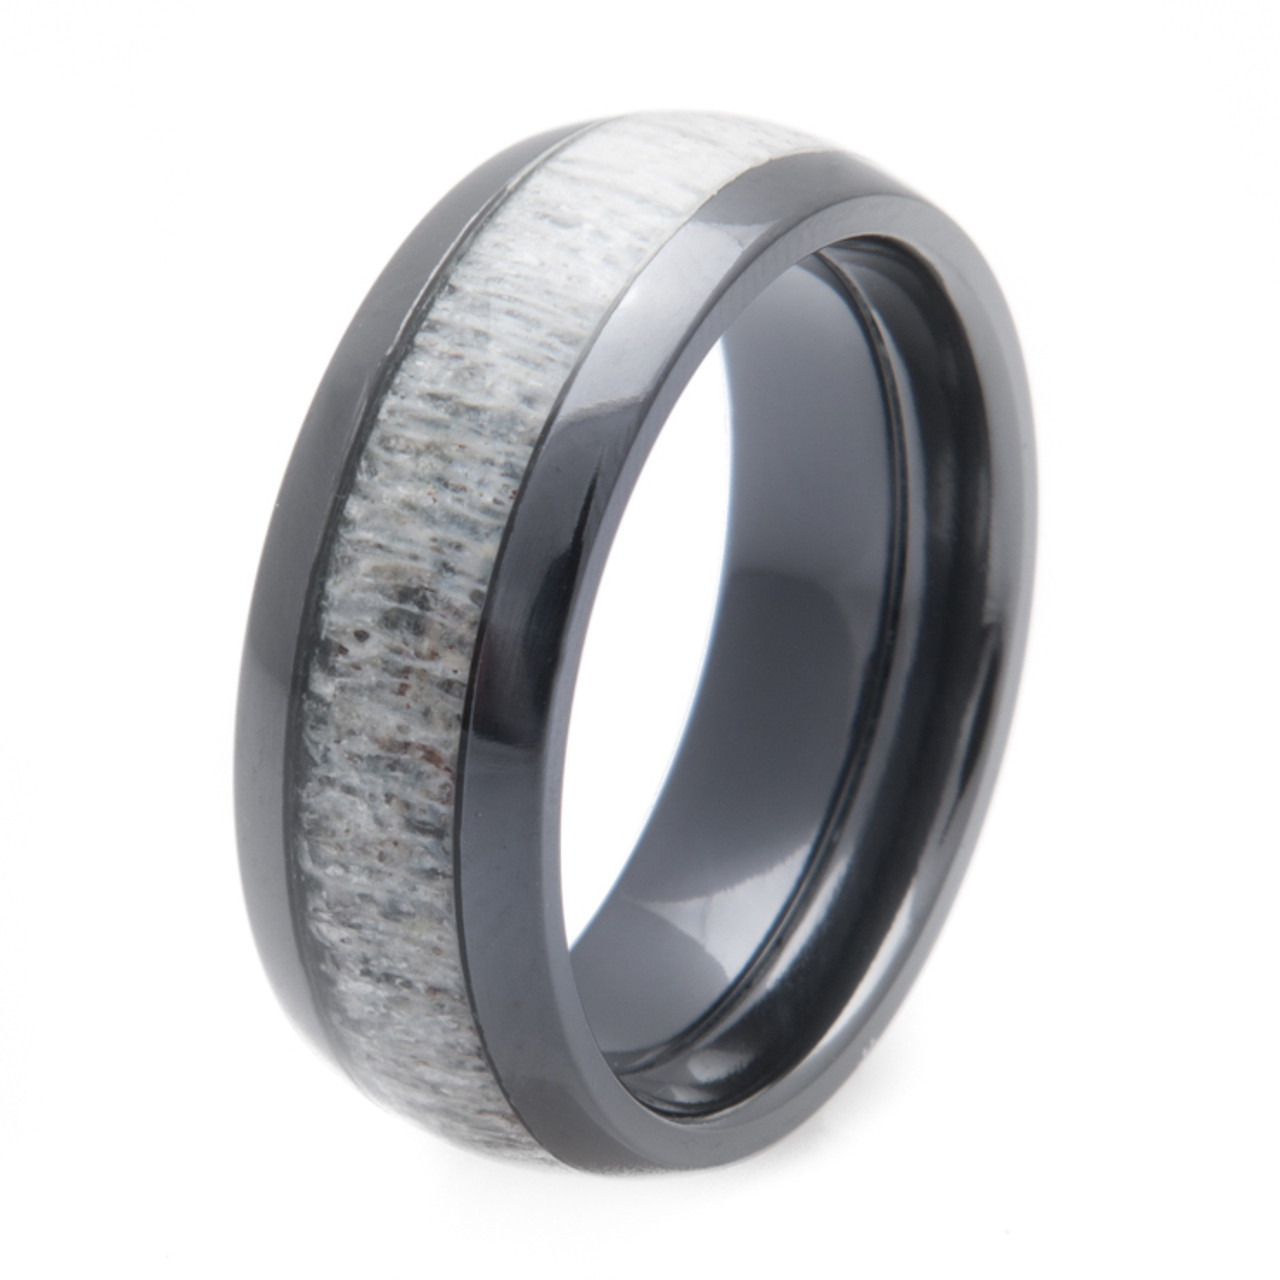 Black Zirconium Deer Antler Inlay Ring TitaniumBuzz